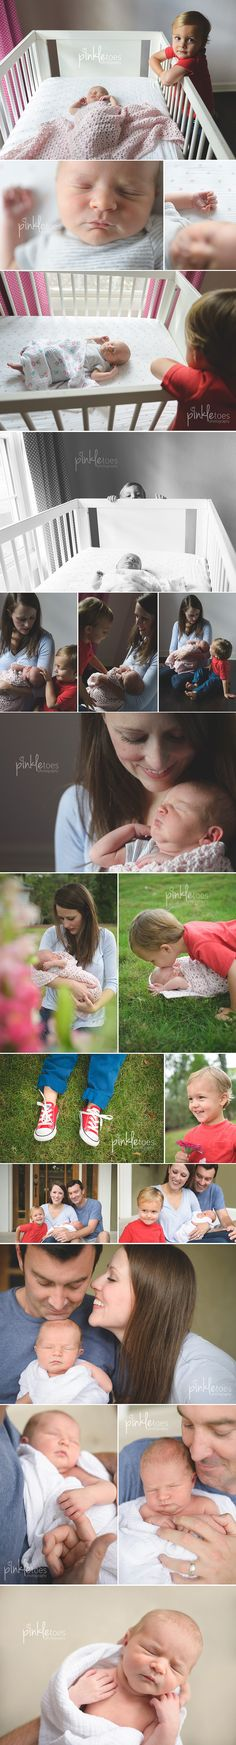 eg-austin-lifestyle-newborn-family-photography-candid-simple-modern-fresh-pinkle-toes